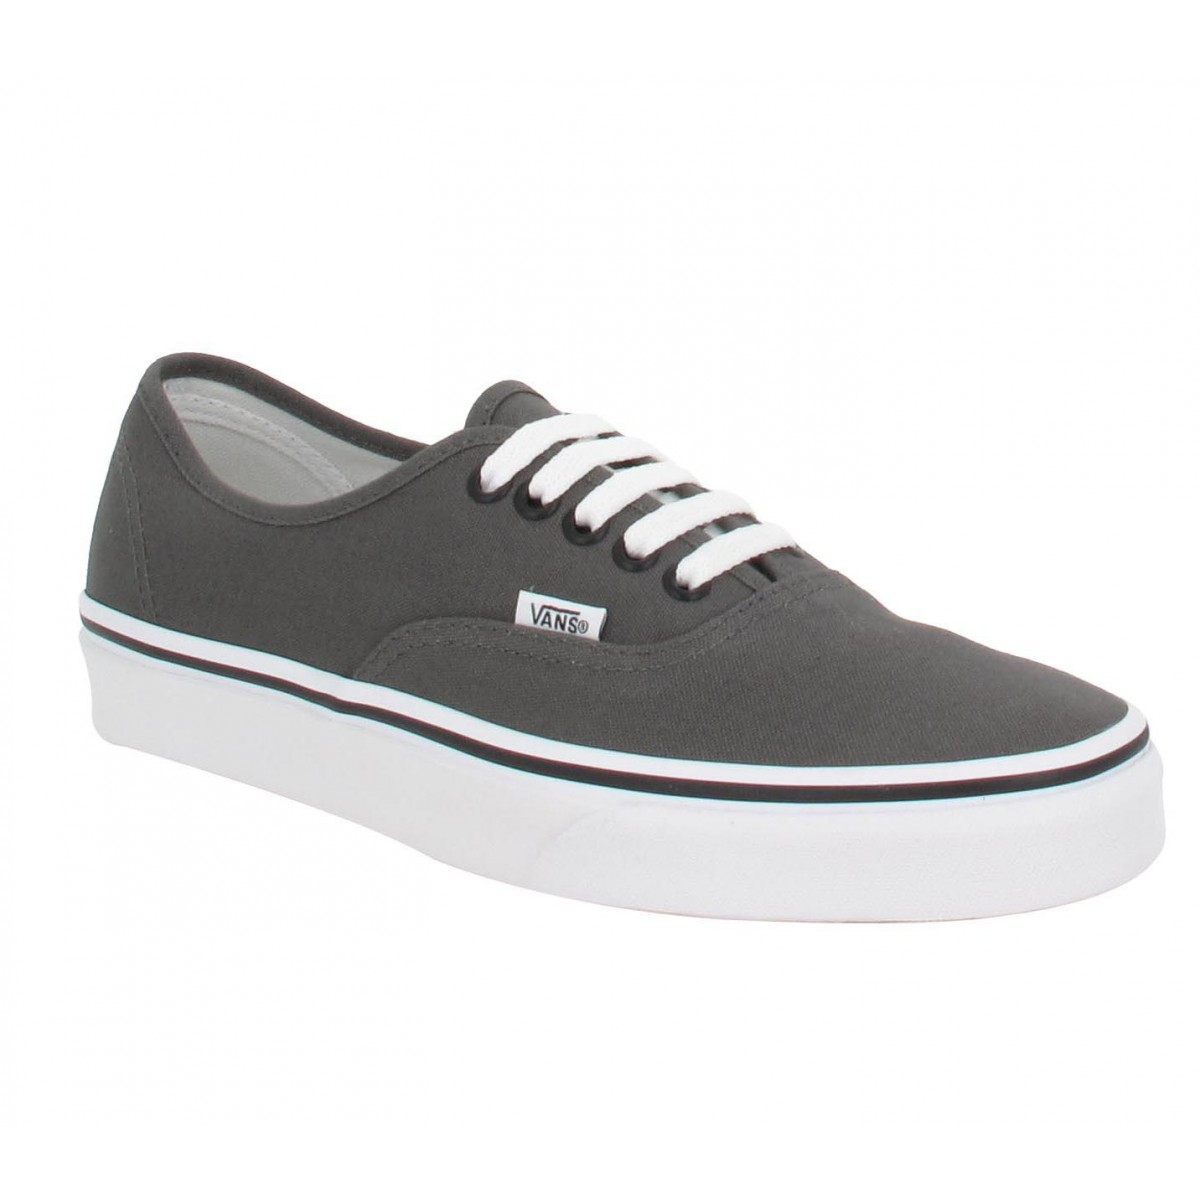 Vans Vans Vans Authentic Toile -37-gris